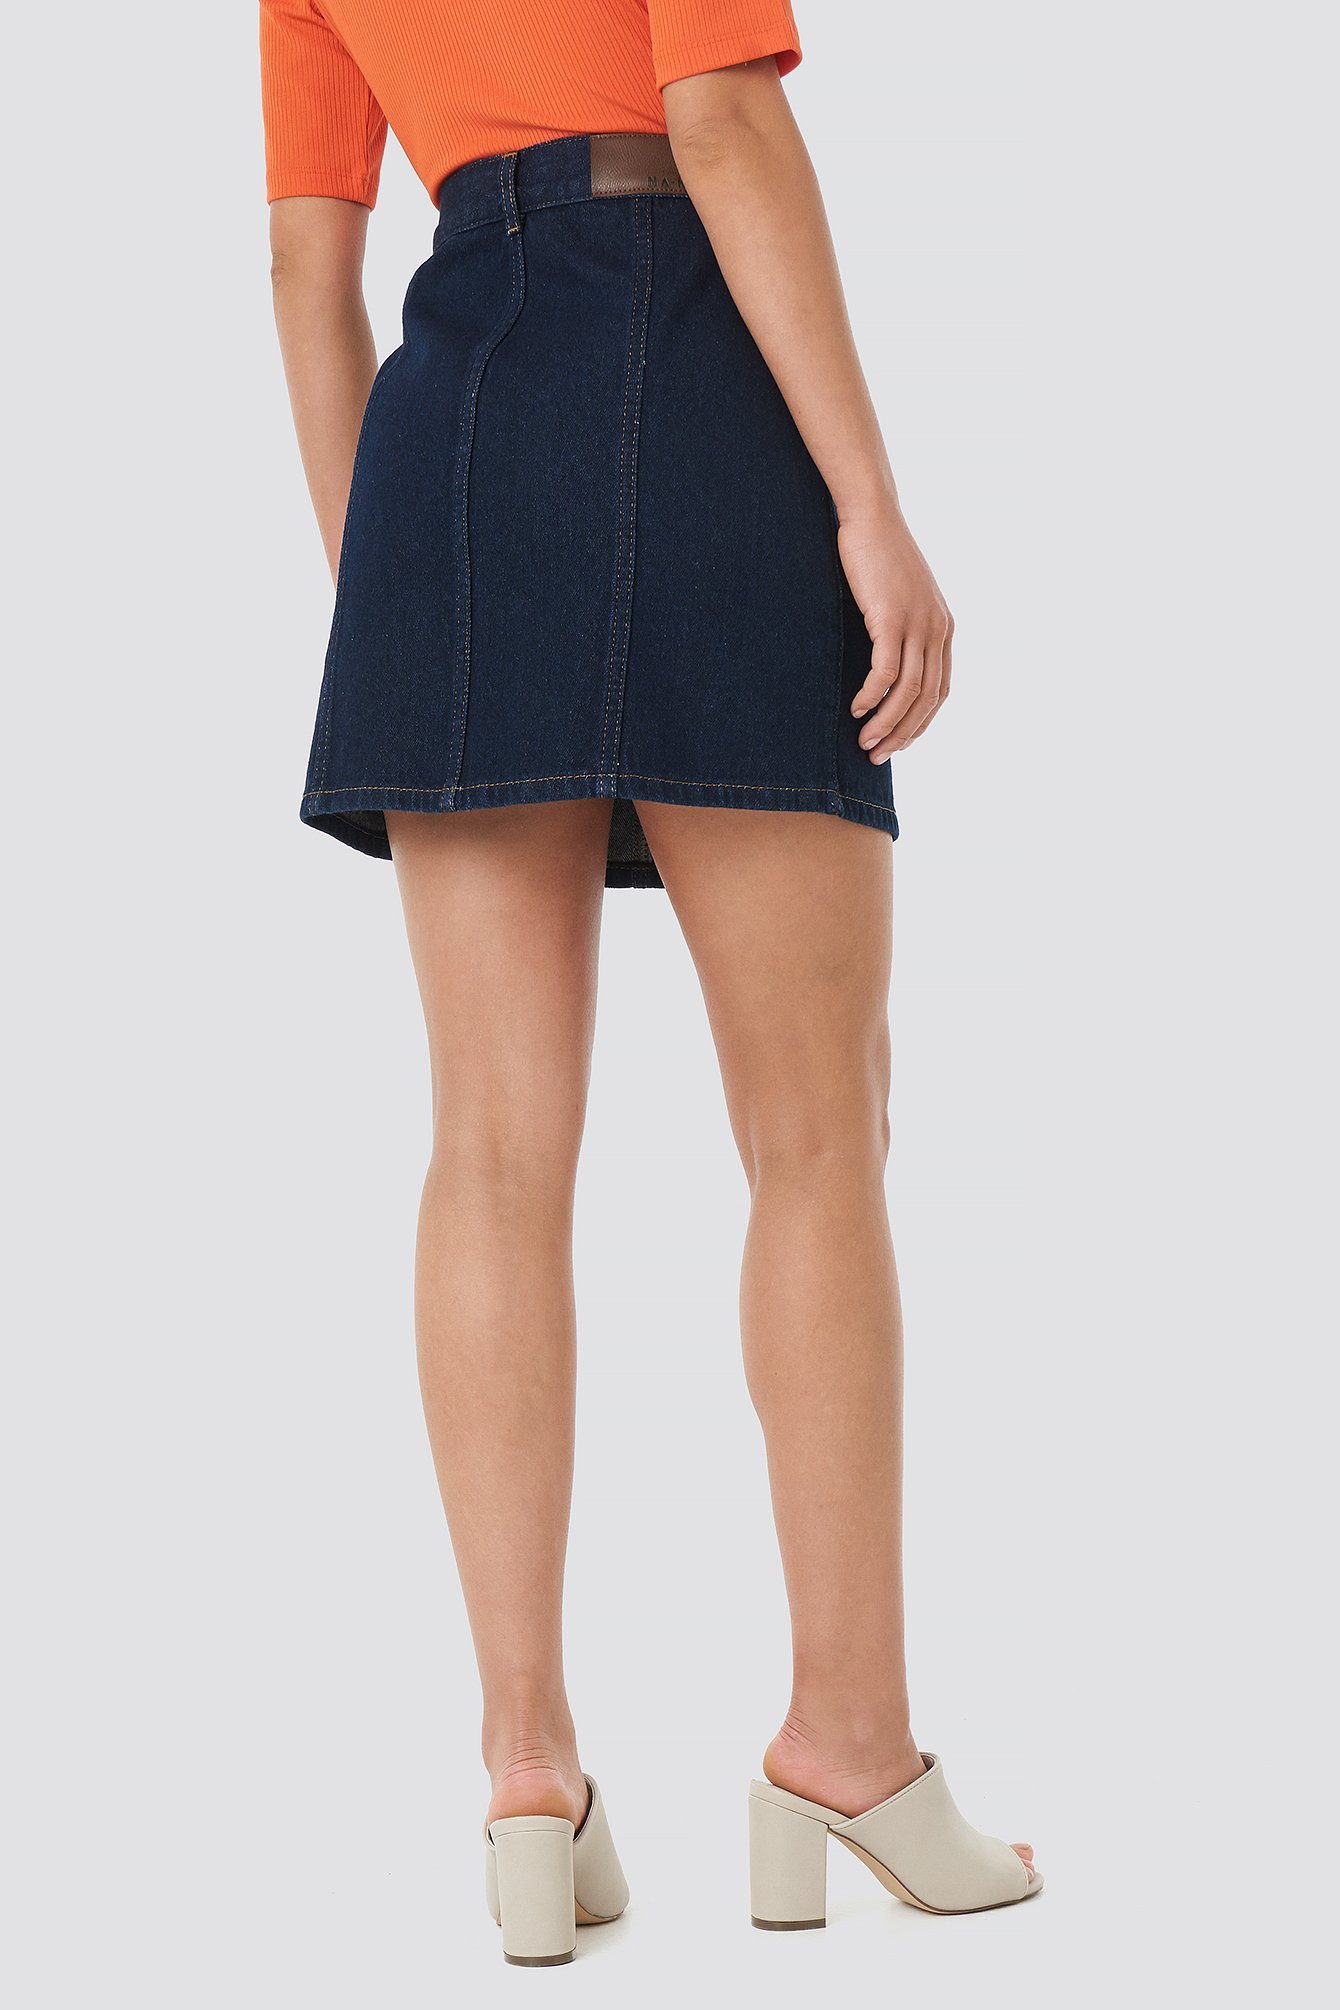 Contrast Stitch Button Up Mini Skirt NA-KD.COM